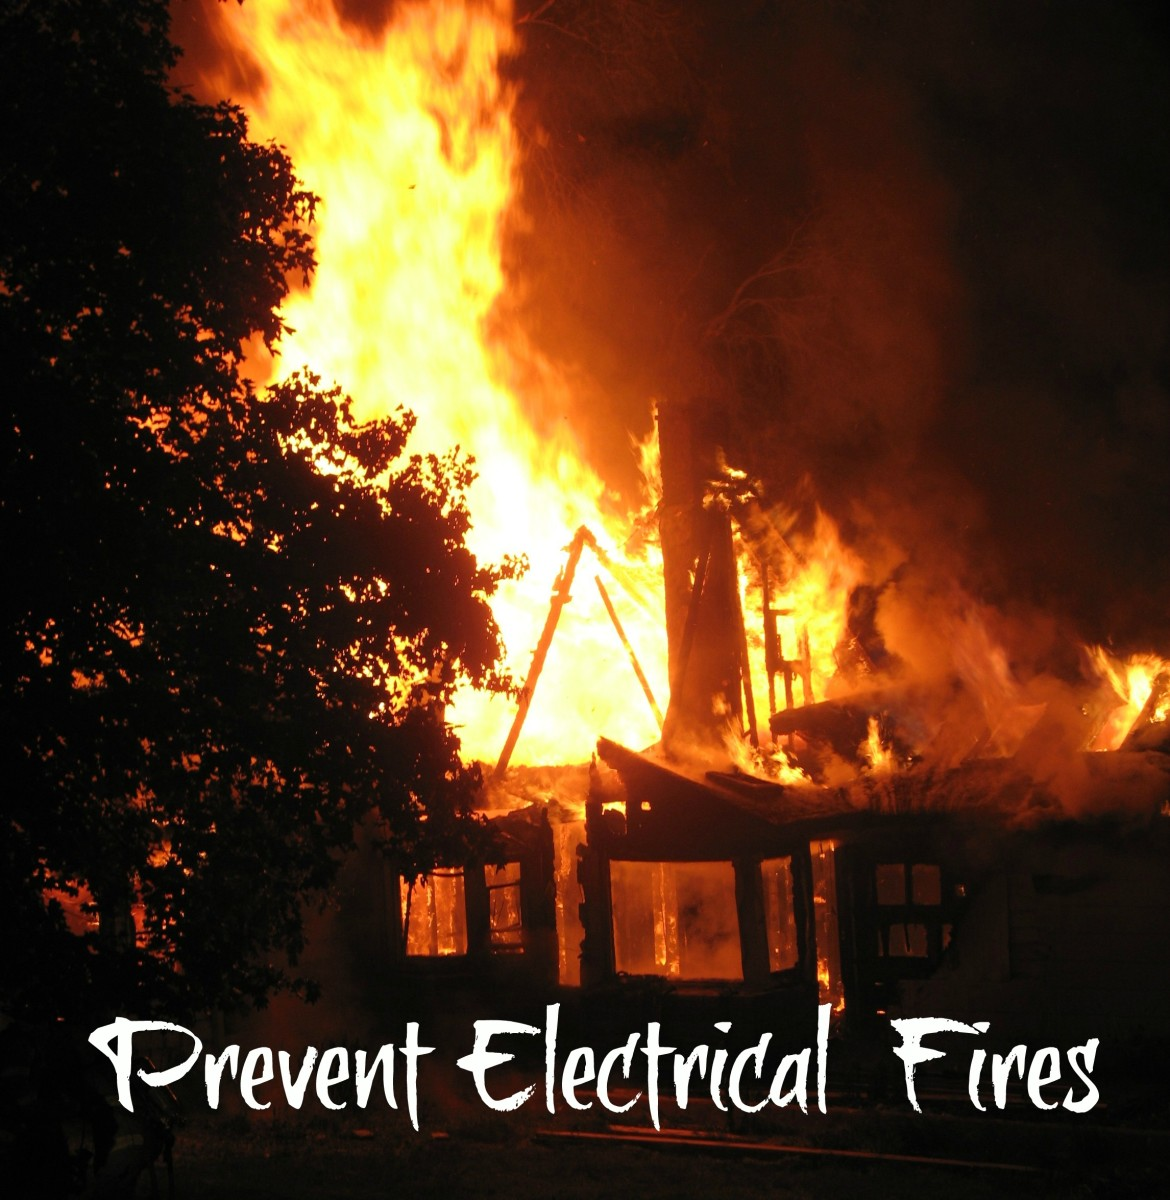 Home electrical fires are preventable, but they happen all the time. Don't let it happen to you and be particularly careful in the holiday season.